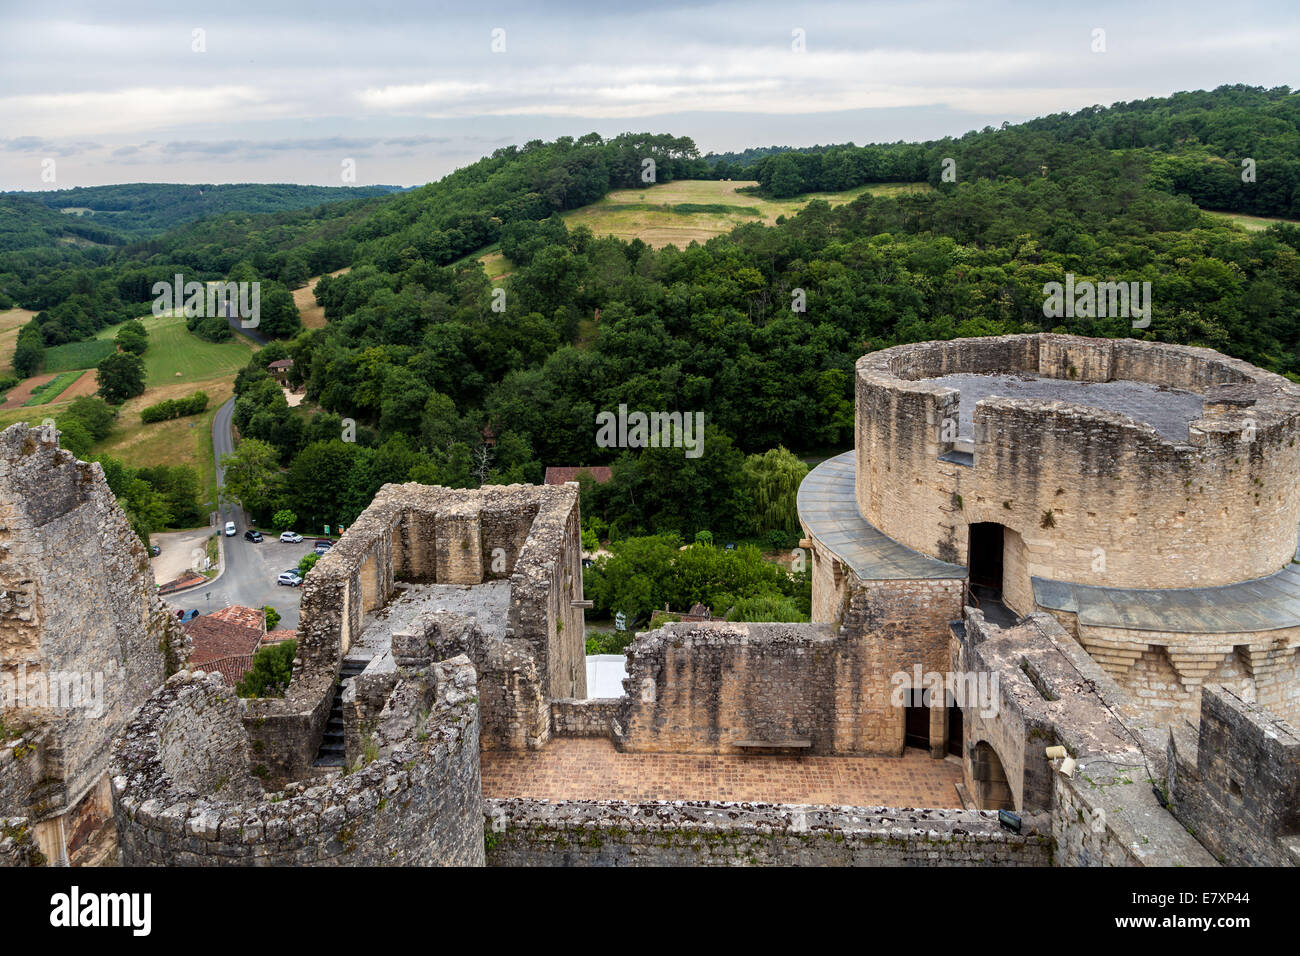 The countryside is visible from the historic Bonaguil Castle, Fumel France, an example of French military architecture - Stock Image